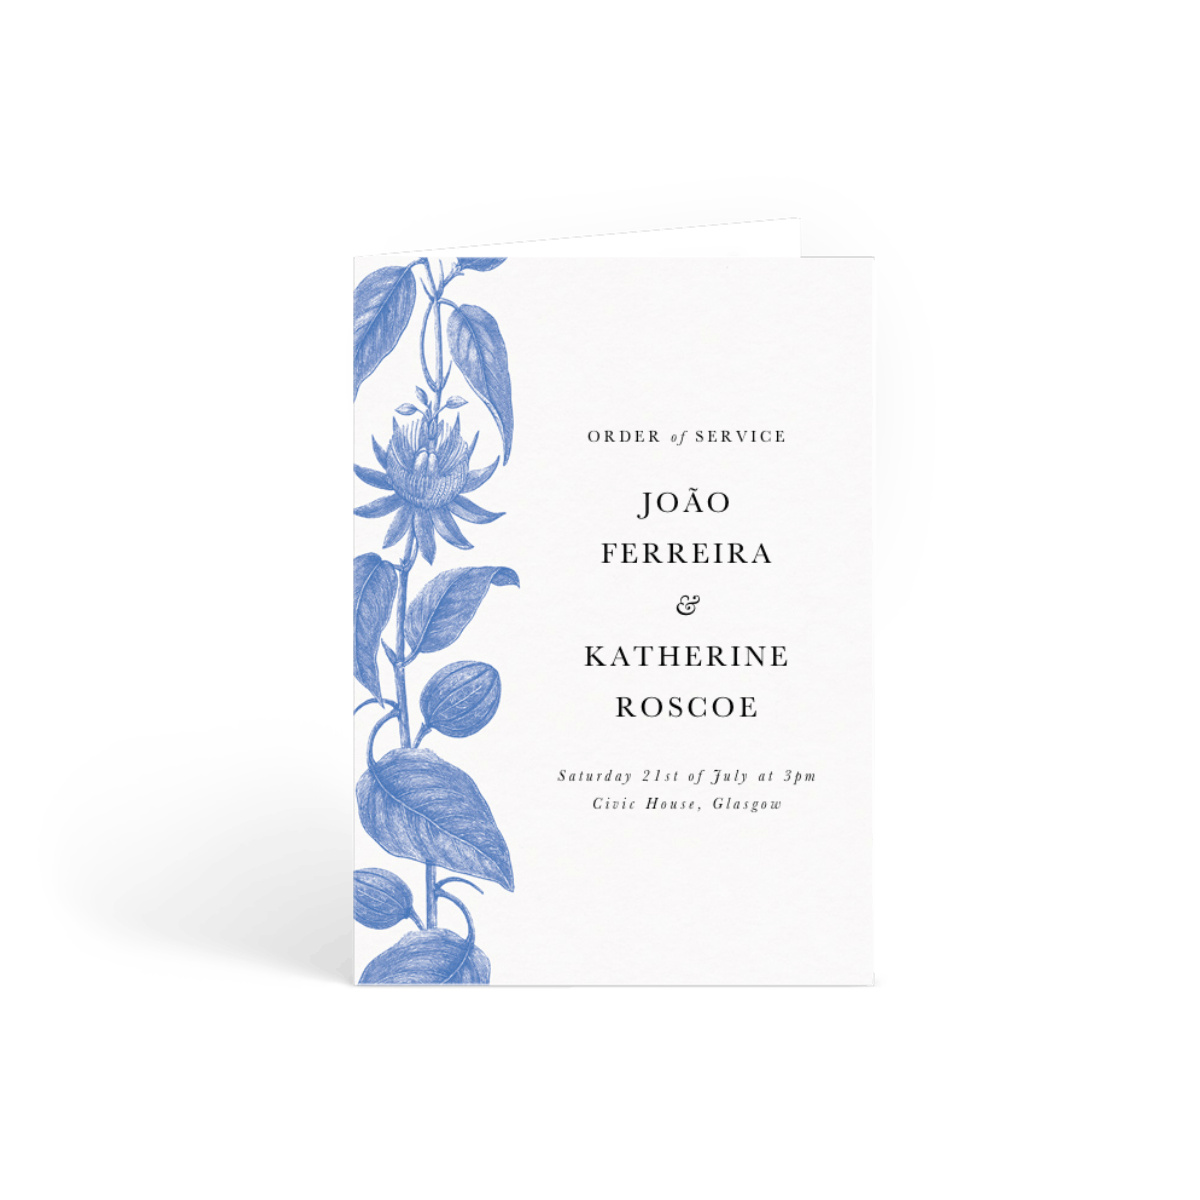 Https%3a%2f%2fwww.papier.com%2fproduct image%2f69645%2f2%2fblue passion flower 16460 vorderseite 1555282352.png?ixlib=rb 1.1